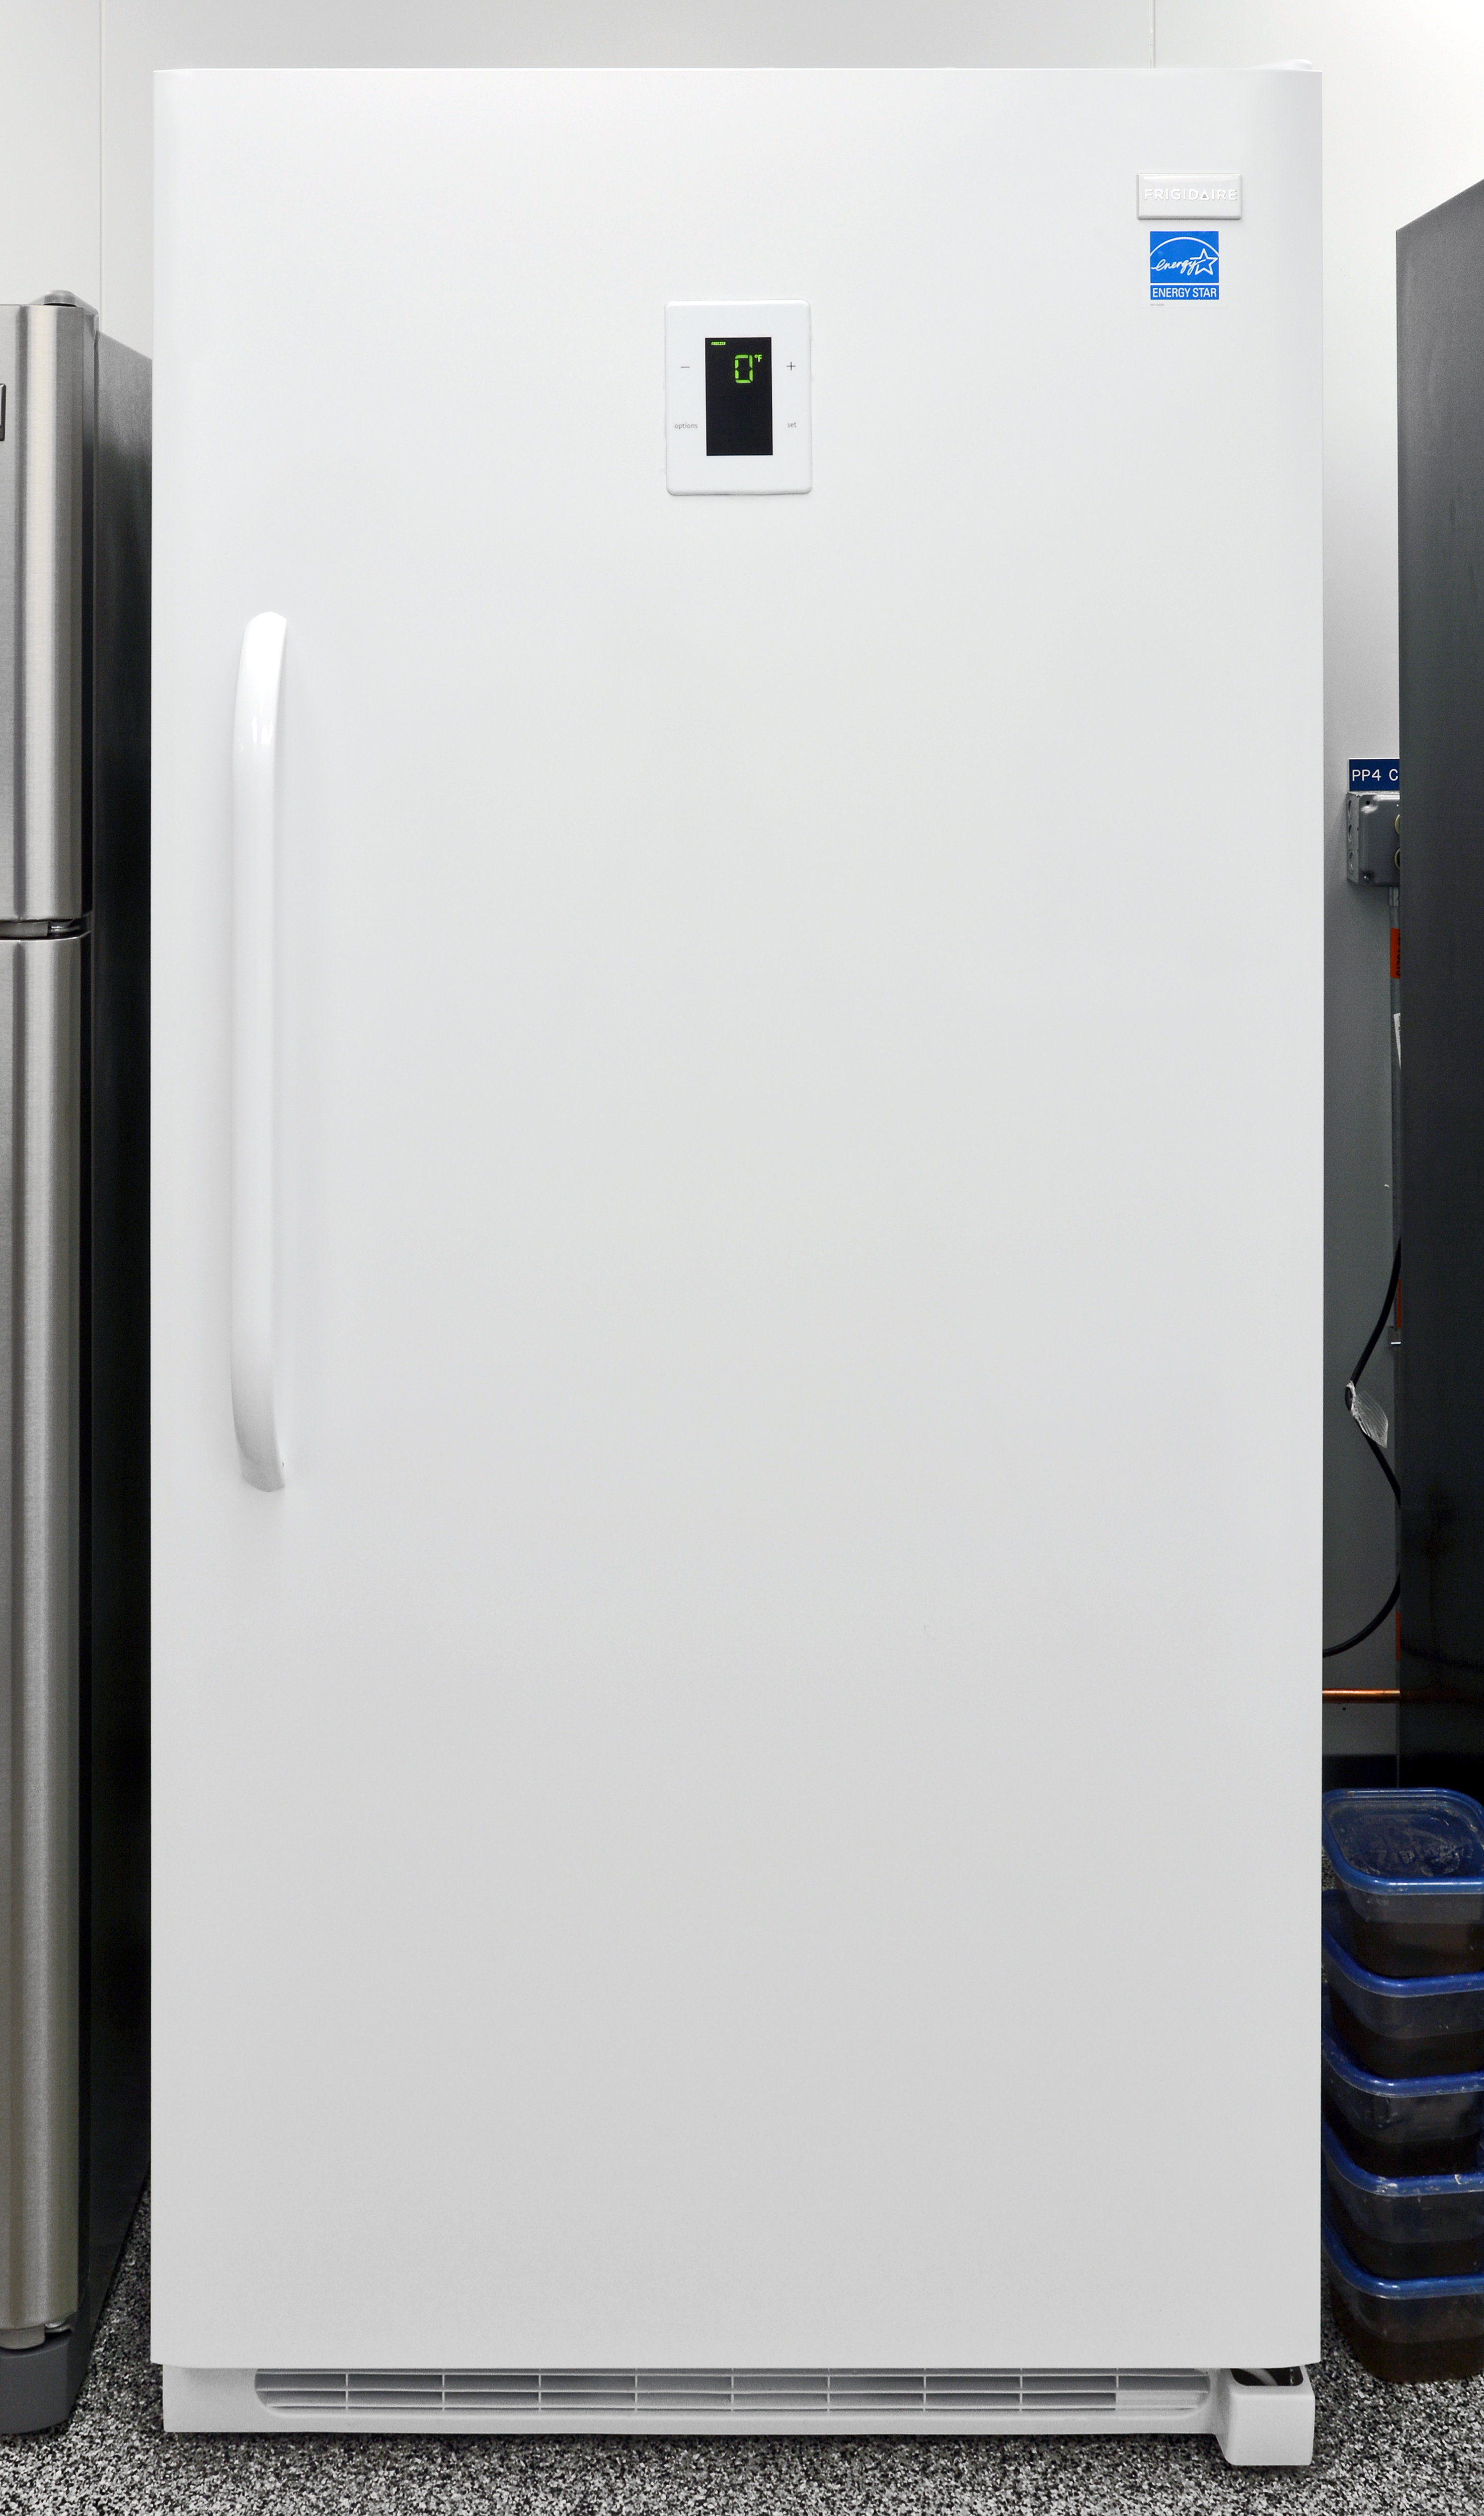 kenmore upright freezer model 253. frigidaire fffh21f6qw upright freezer is only available in kenmore model 253 o